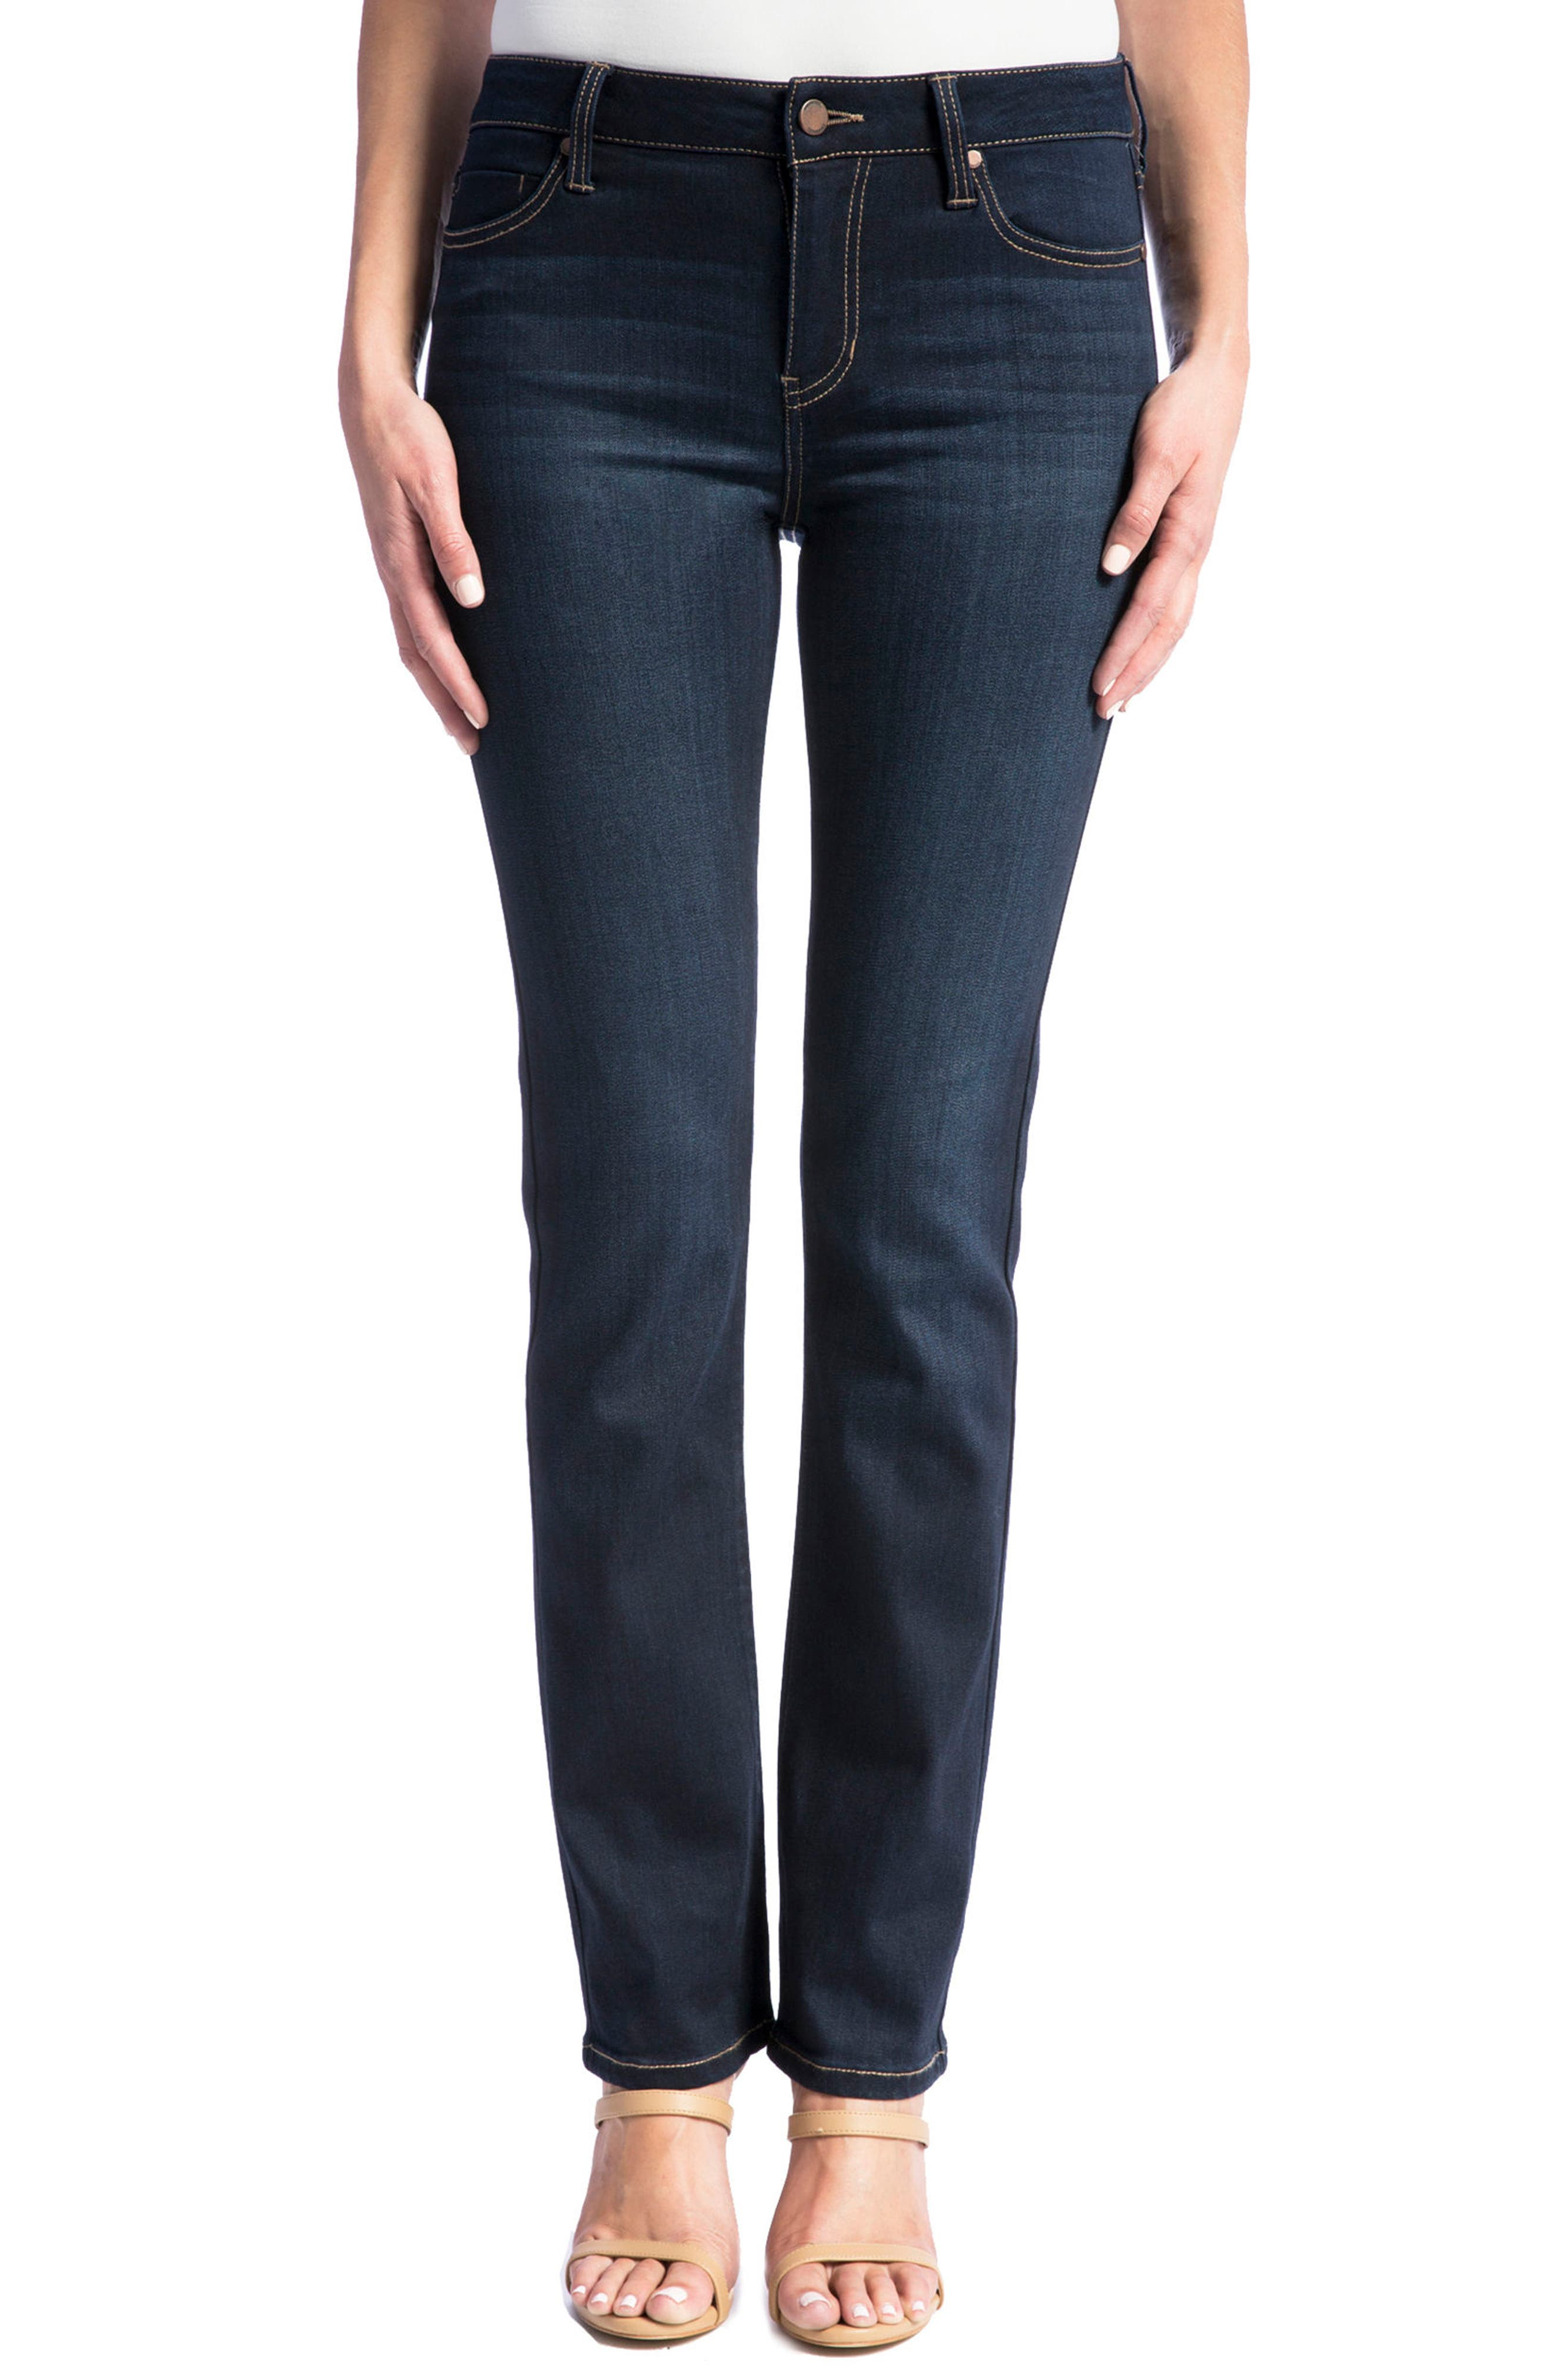 Liverpool Jeans Co. Sadie Stretch Straight Leg Jeans (Stone) (Petite)